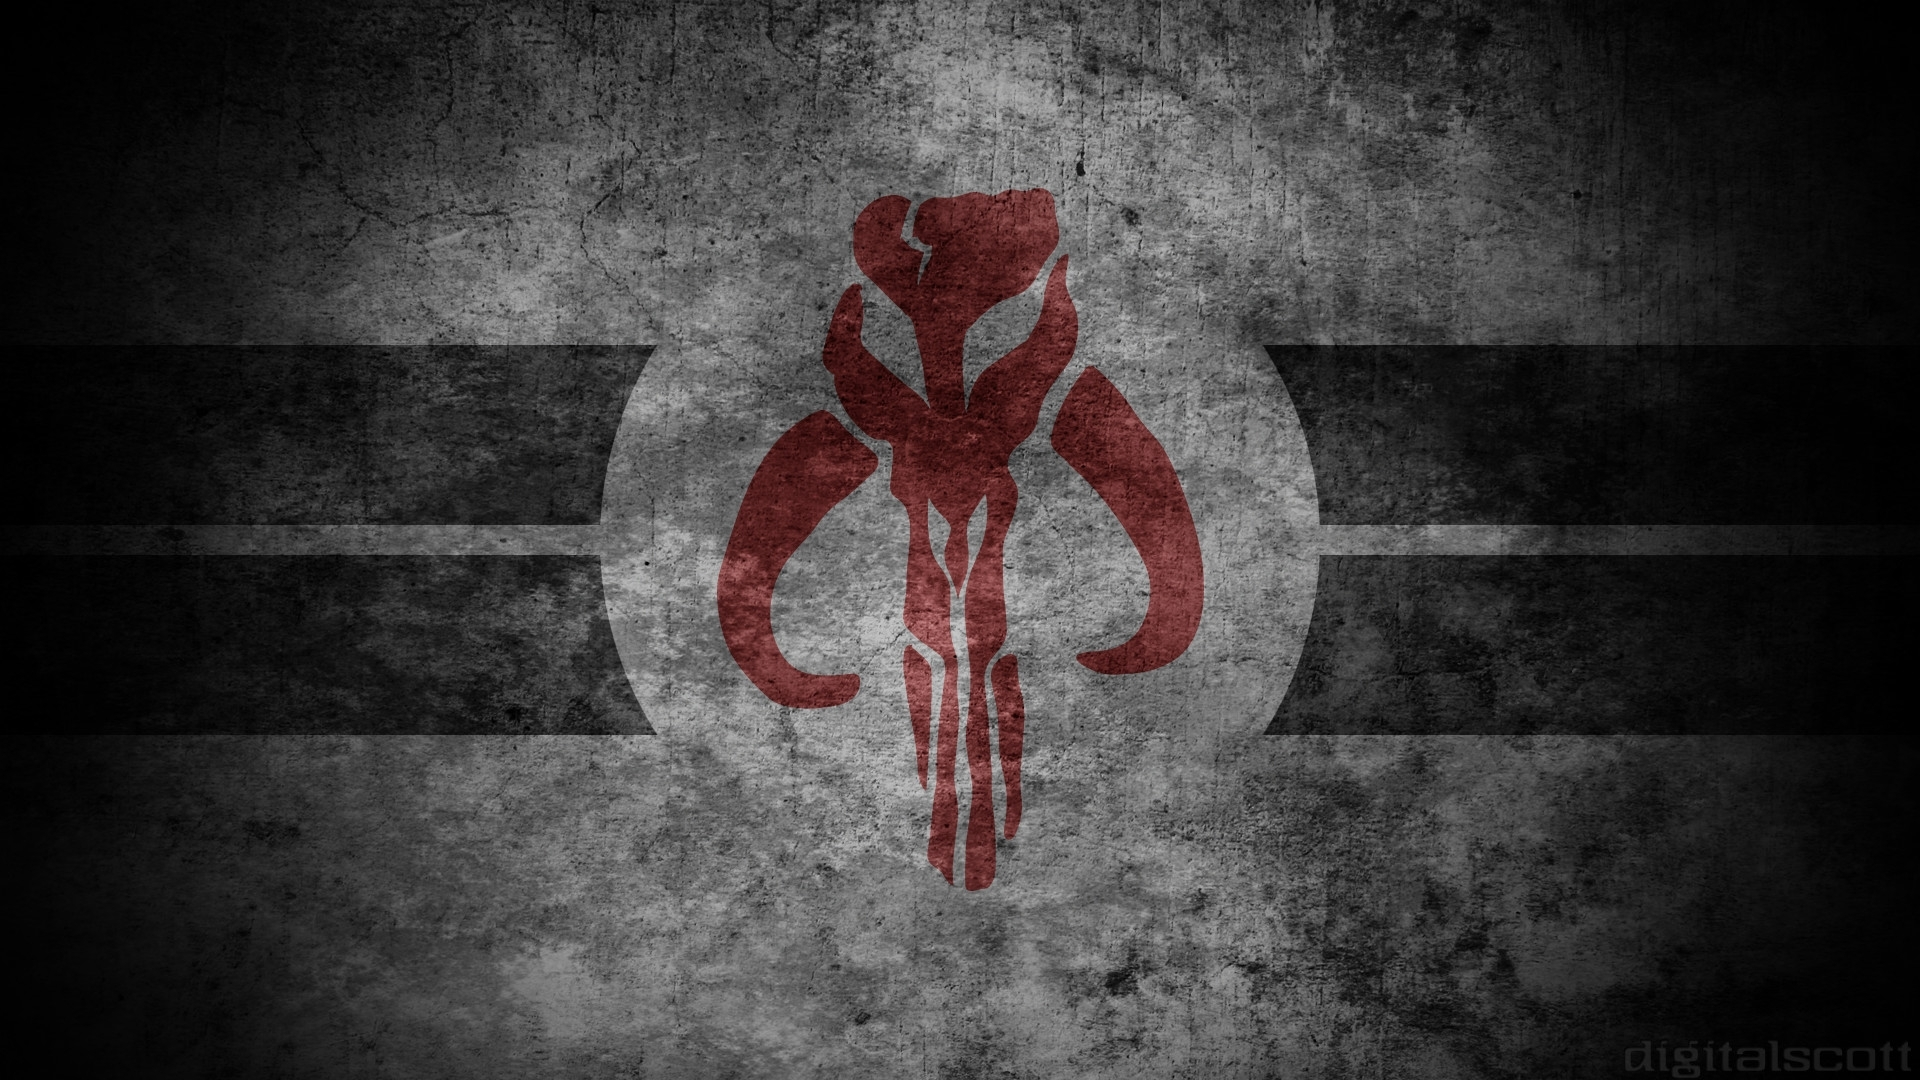 mandalorian hd wallpaper (77+ images)